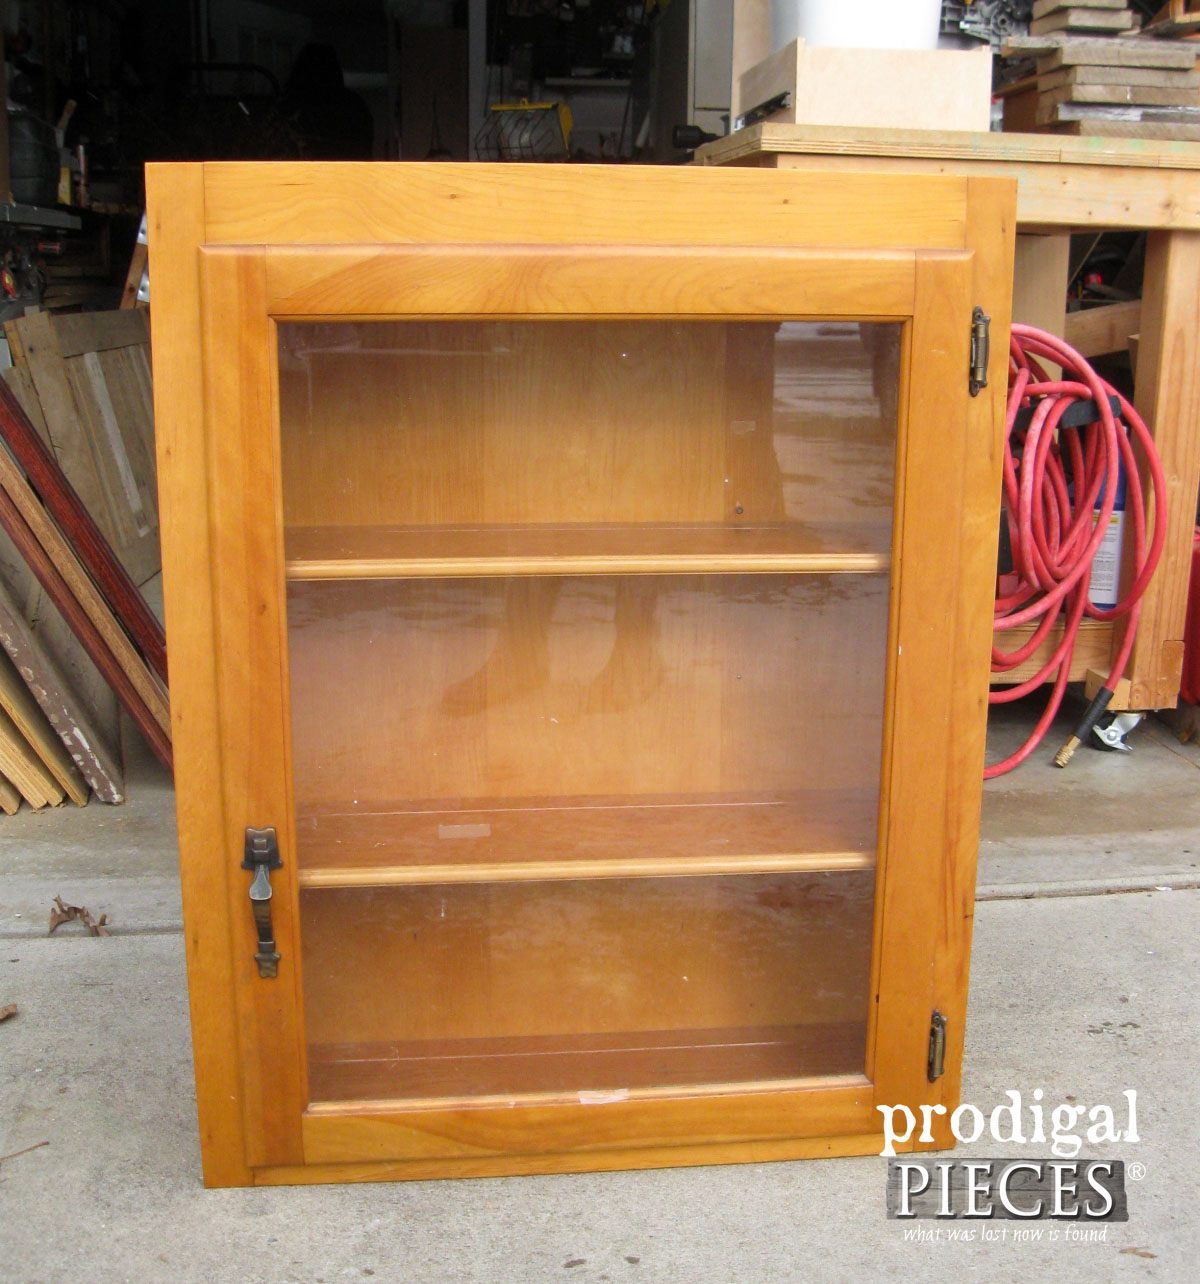 Thrifted Glass Cabinet Before Makeover by Prodigal Pieces | prodigalpieces.com